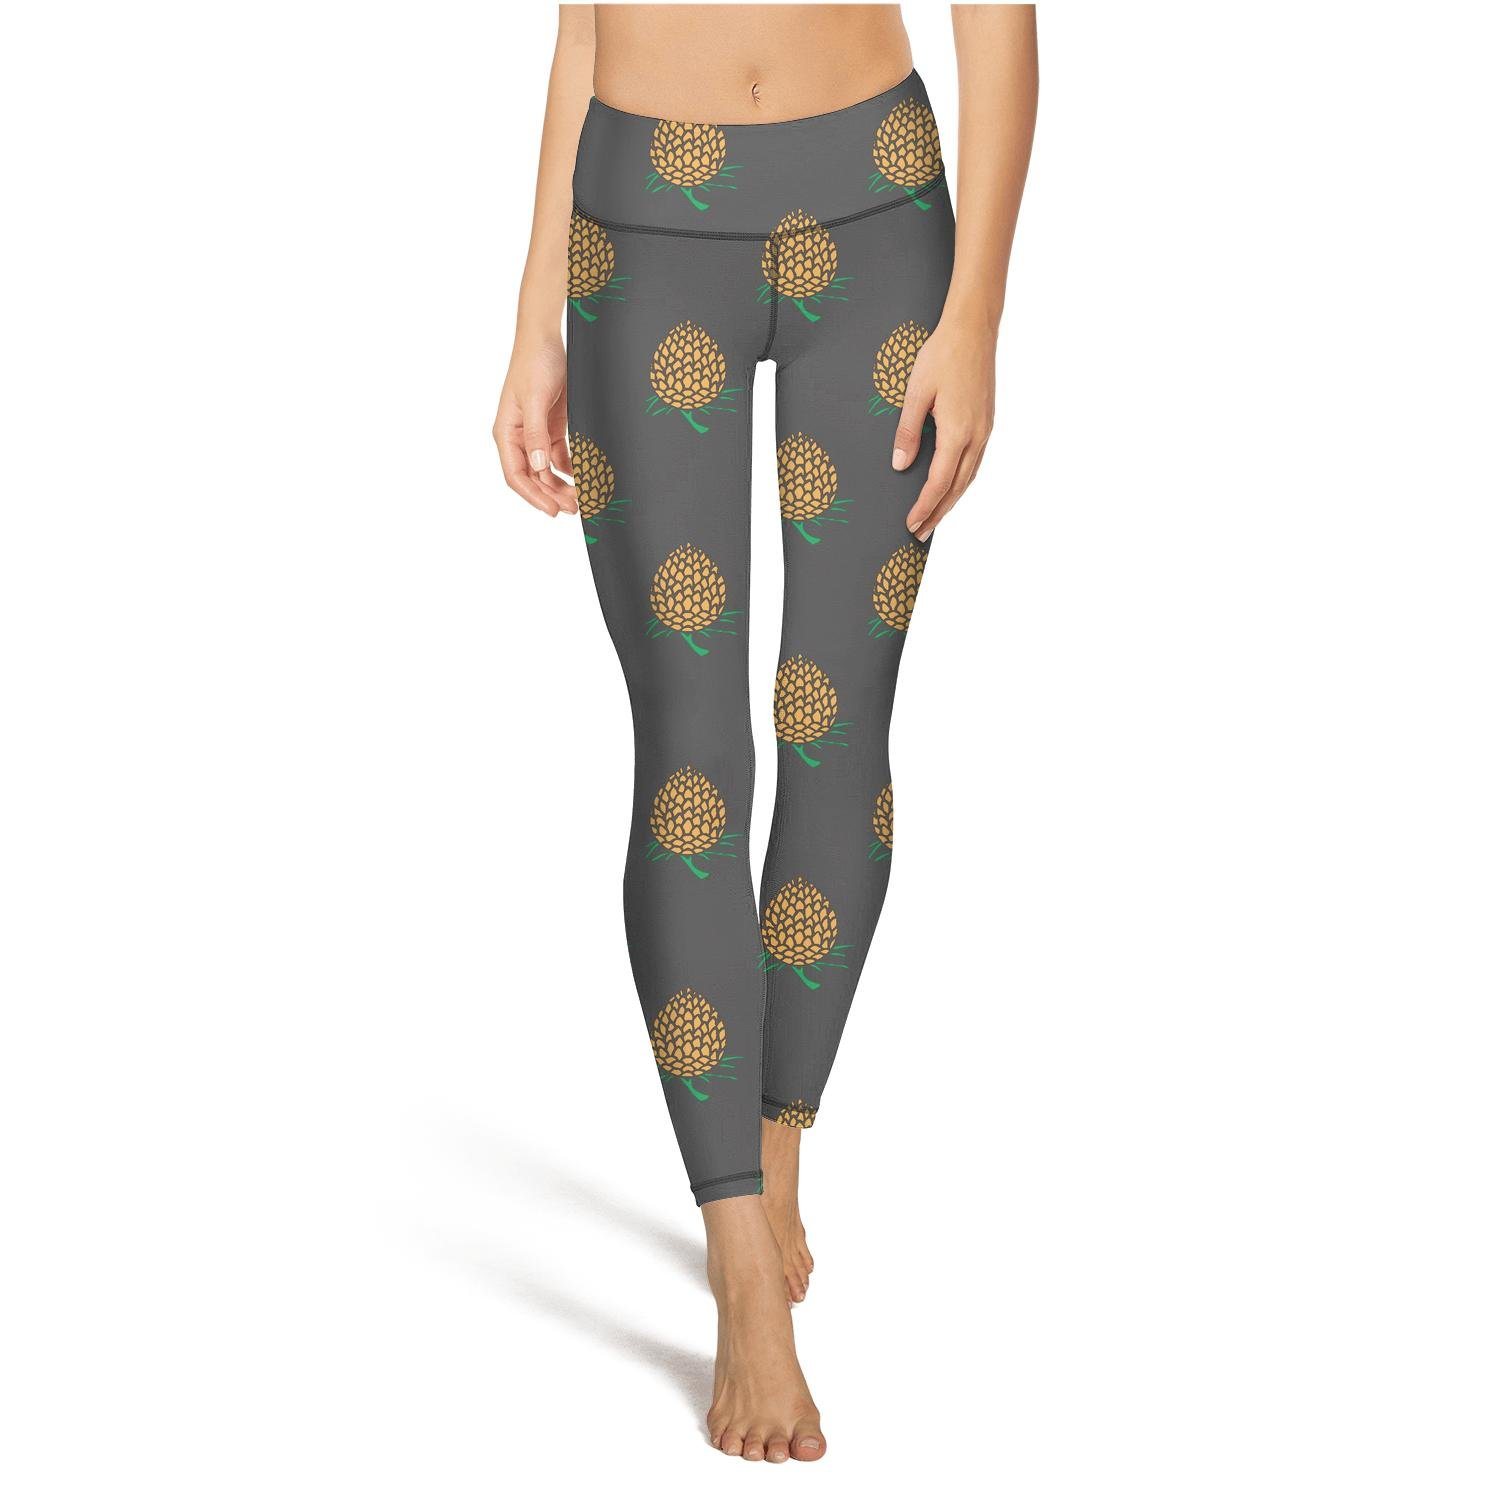 338e368633 Amazon.com: juiertj rt Long Hiking Tropical Fruit Pineapple Watermelon  Flowers Leggings Sweat-Wicking High Waist Tights Active Yoga Pants: Clothing